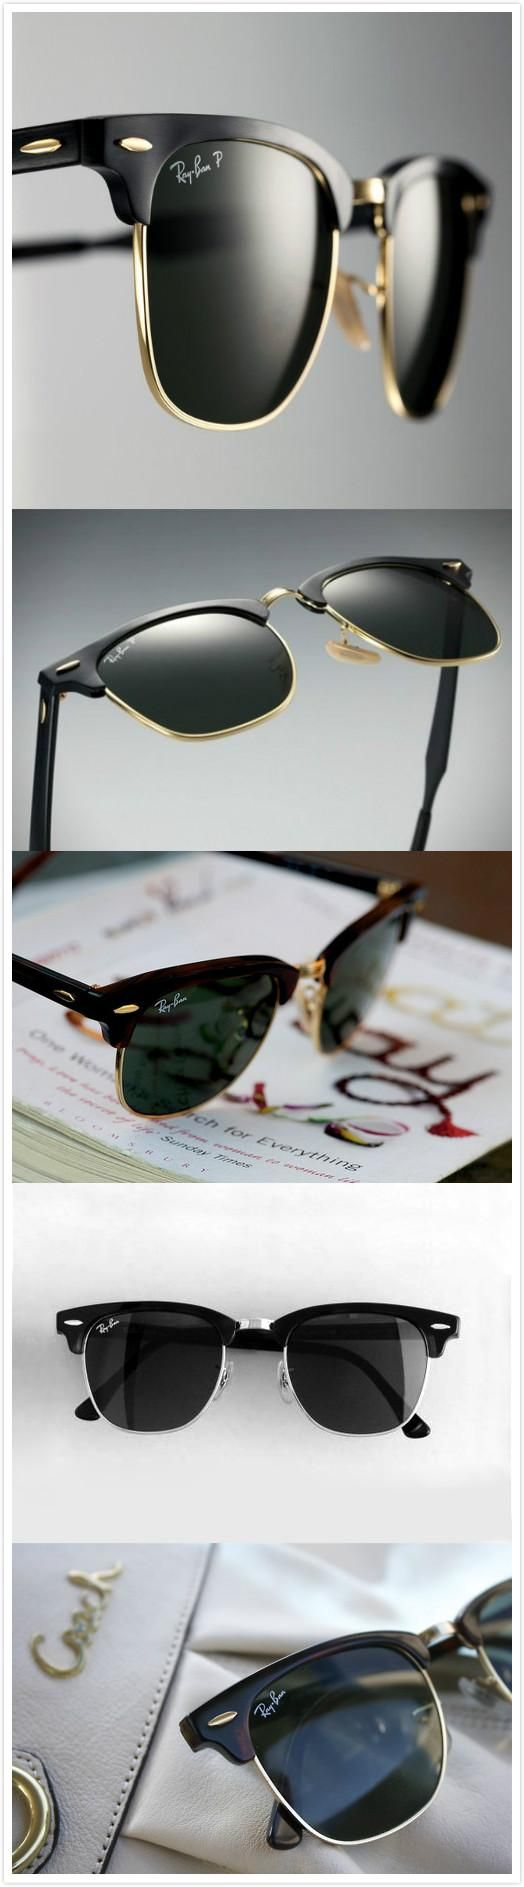 I would totally get some ray bans if I had contacts. Soon. Not to mention, those docs are beautiful.